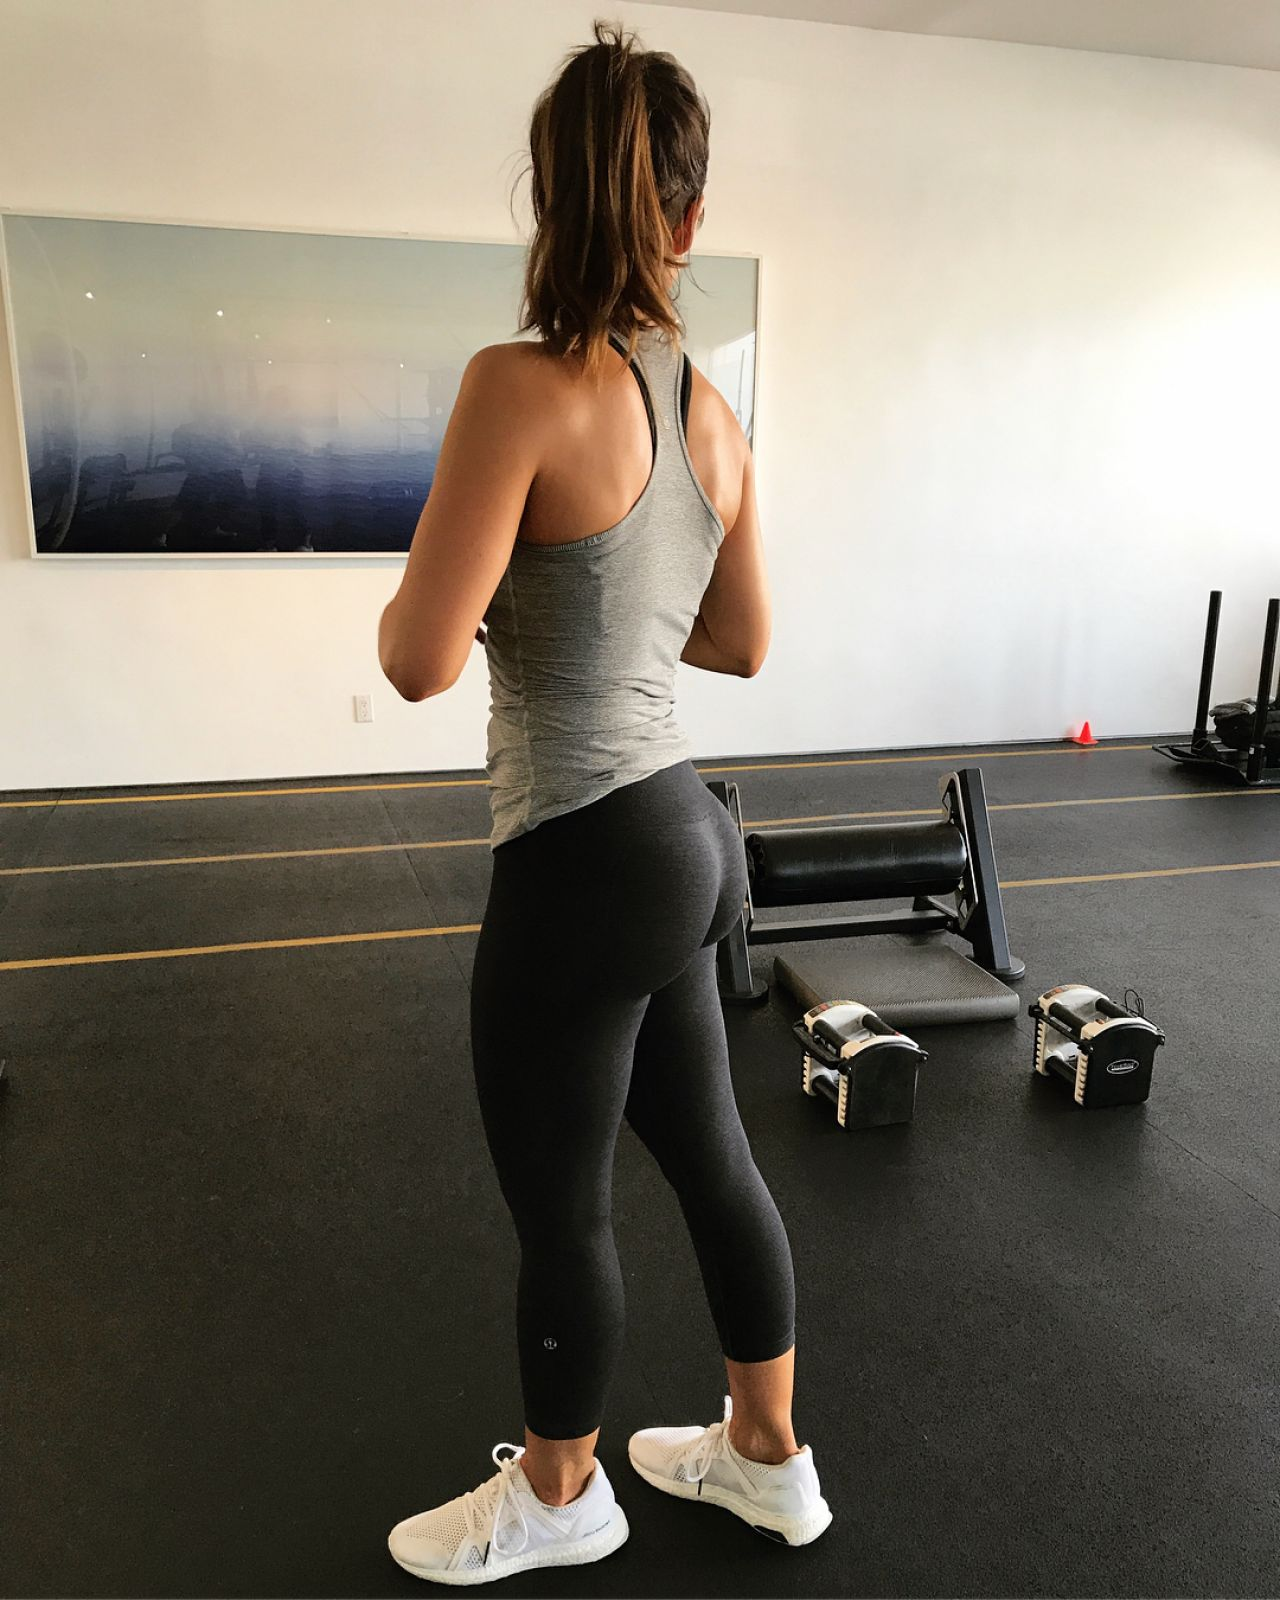 Minka Kelly - Social Media Images and Videos 10/11/2017